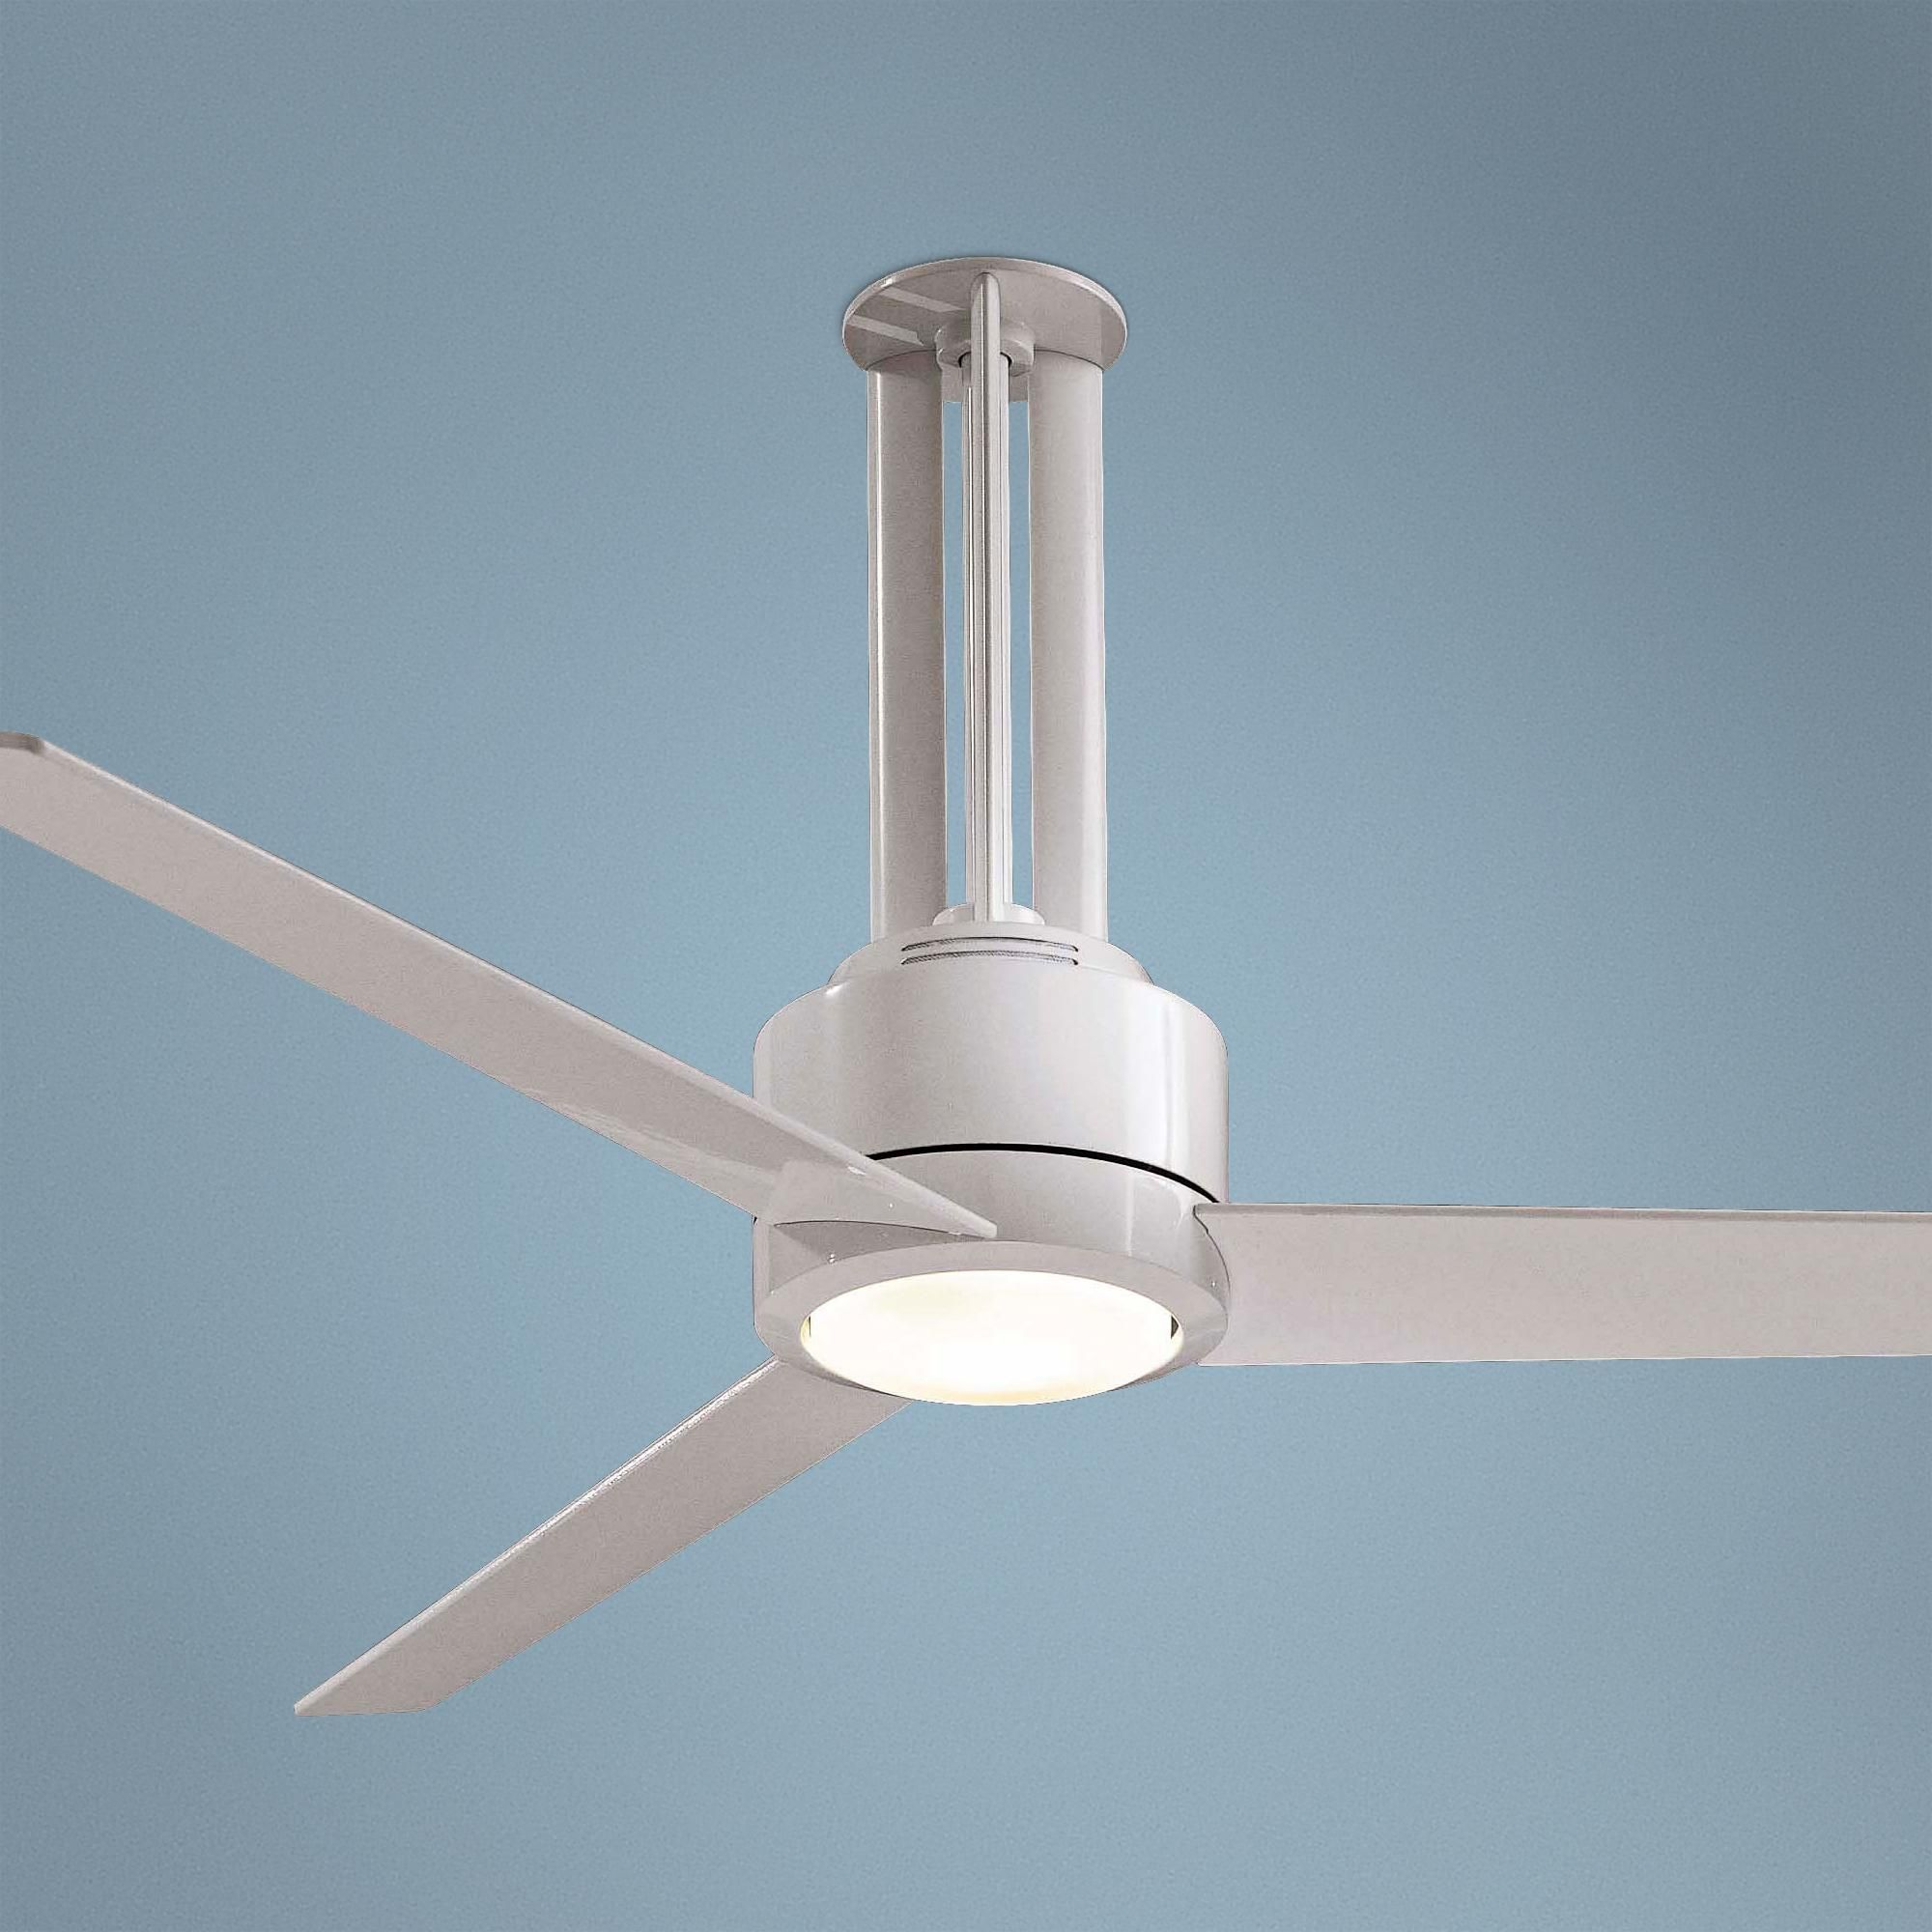 56 minka aire flyte white ceiling fan ceiling fans pinterest 56 minka aire flyte white ceiling fan aloadofball Choice Image